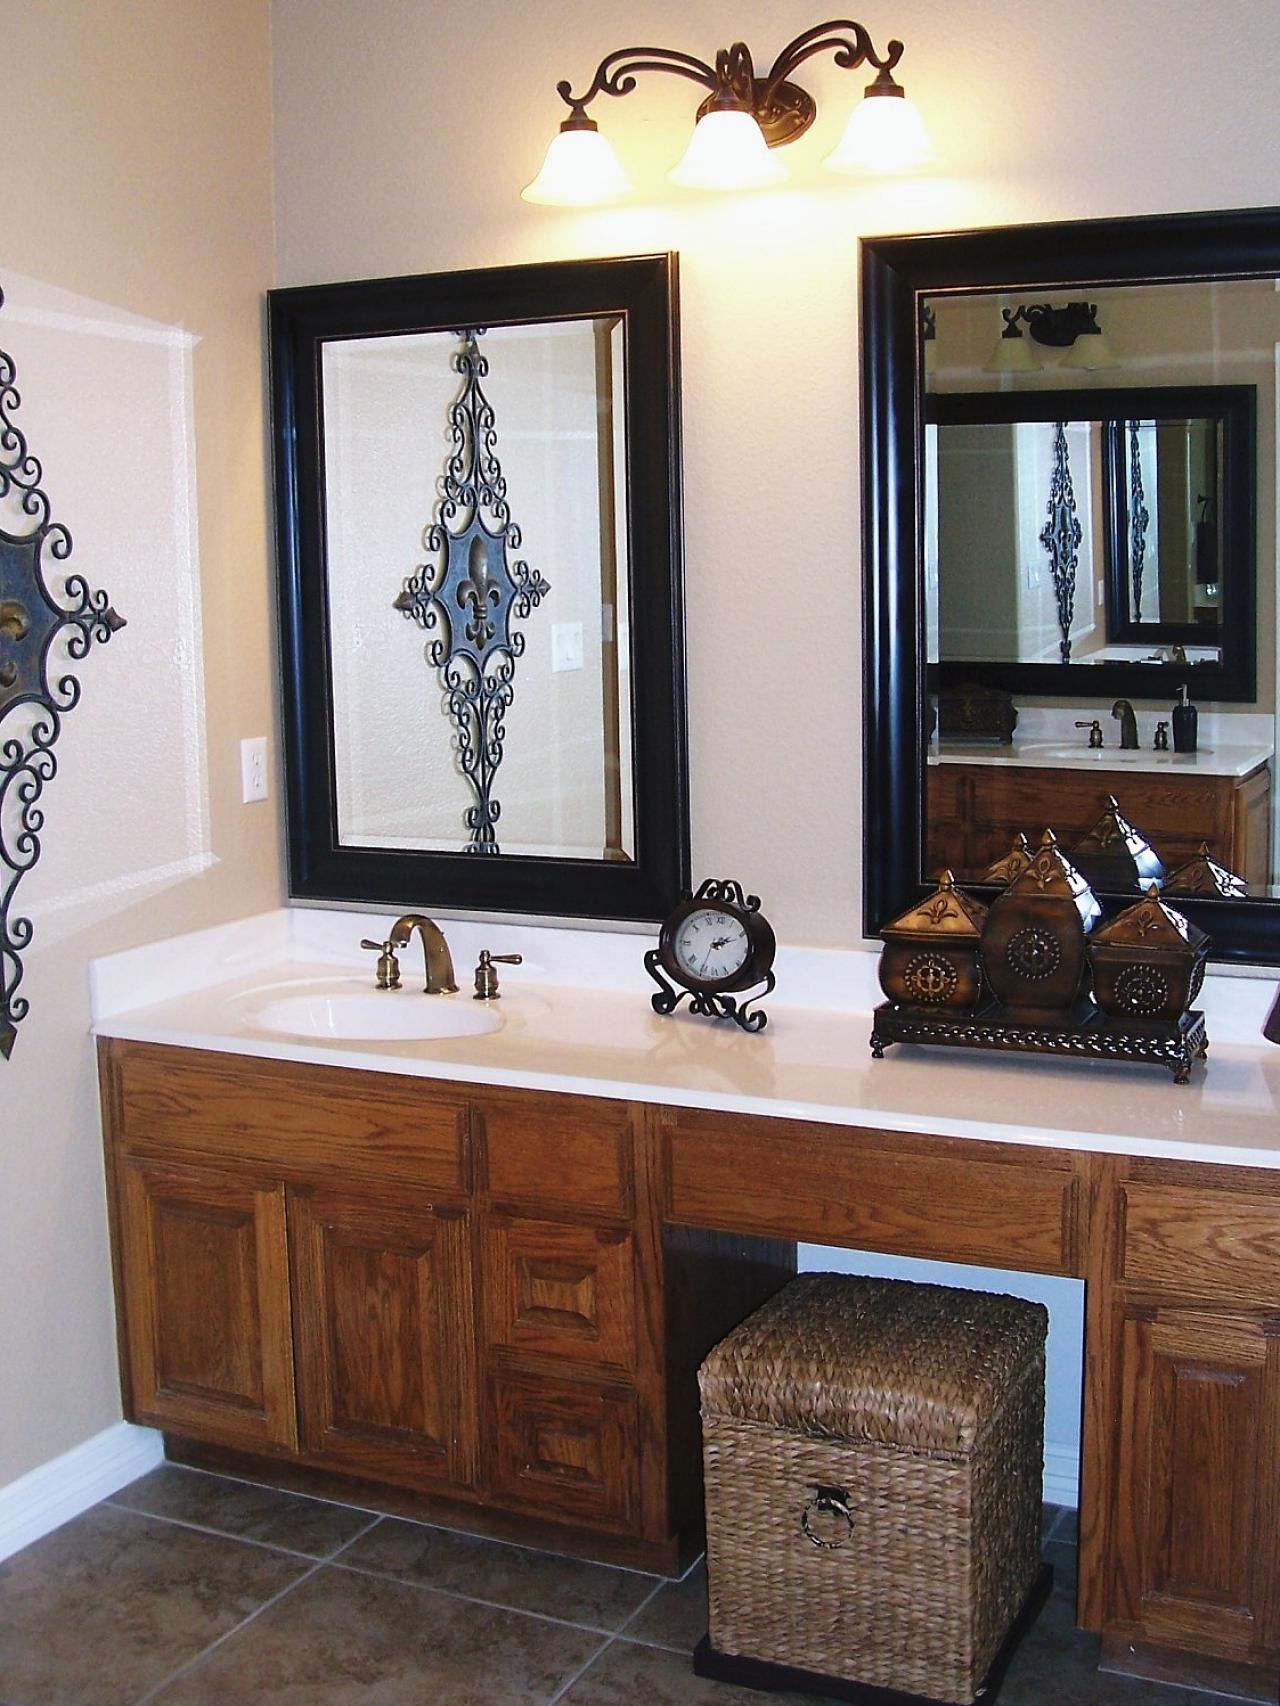 Bathroom Design with Two Black Framed Bathroom Vanity Mirrors Marble Floor and Built In Wastafel Wooden Cabinets